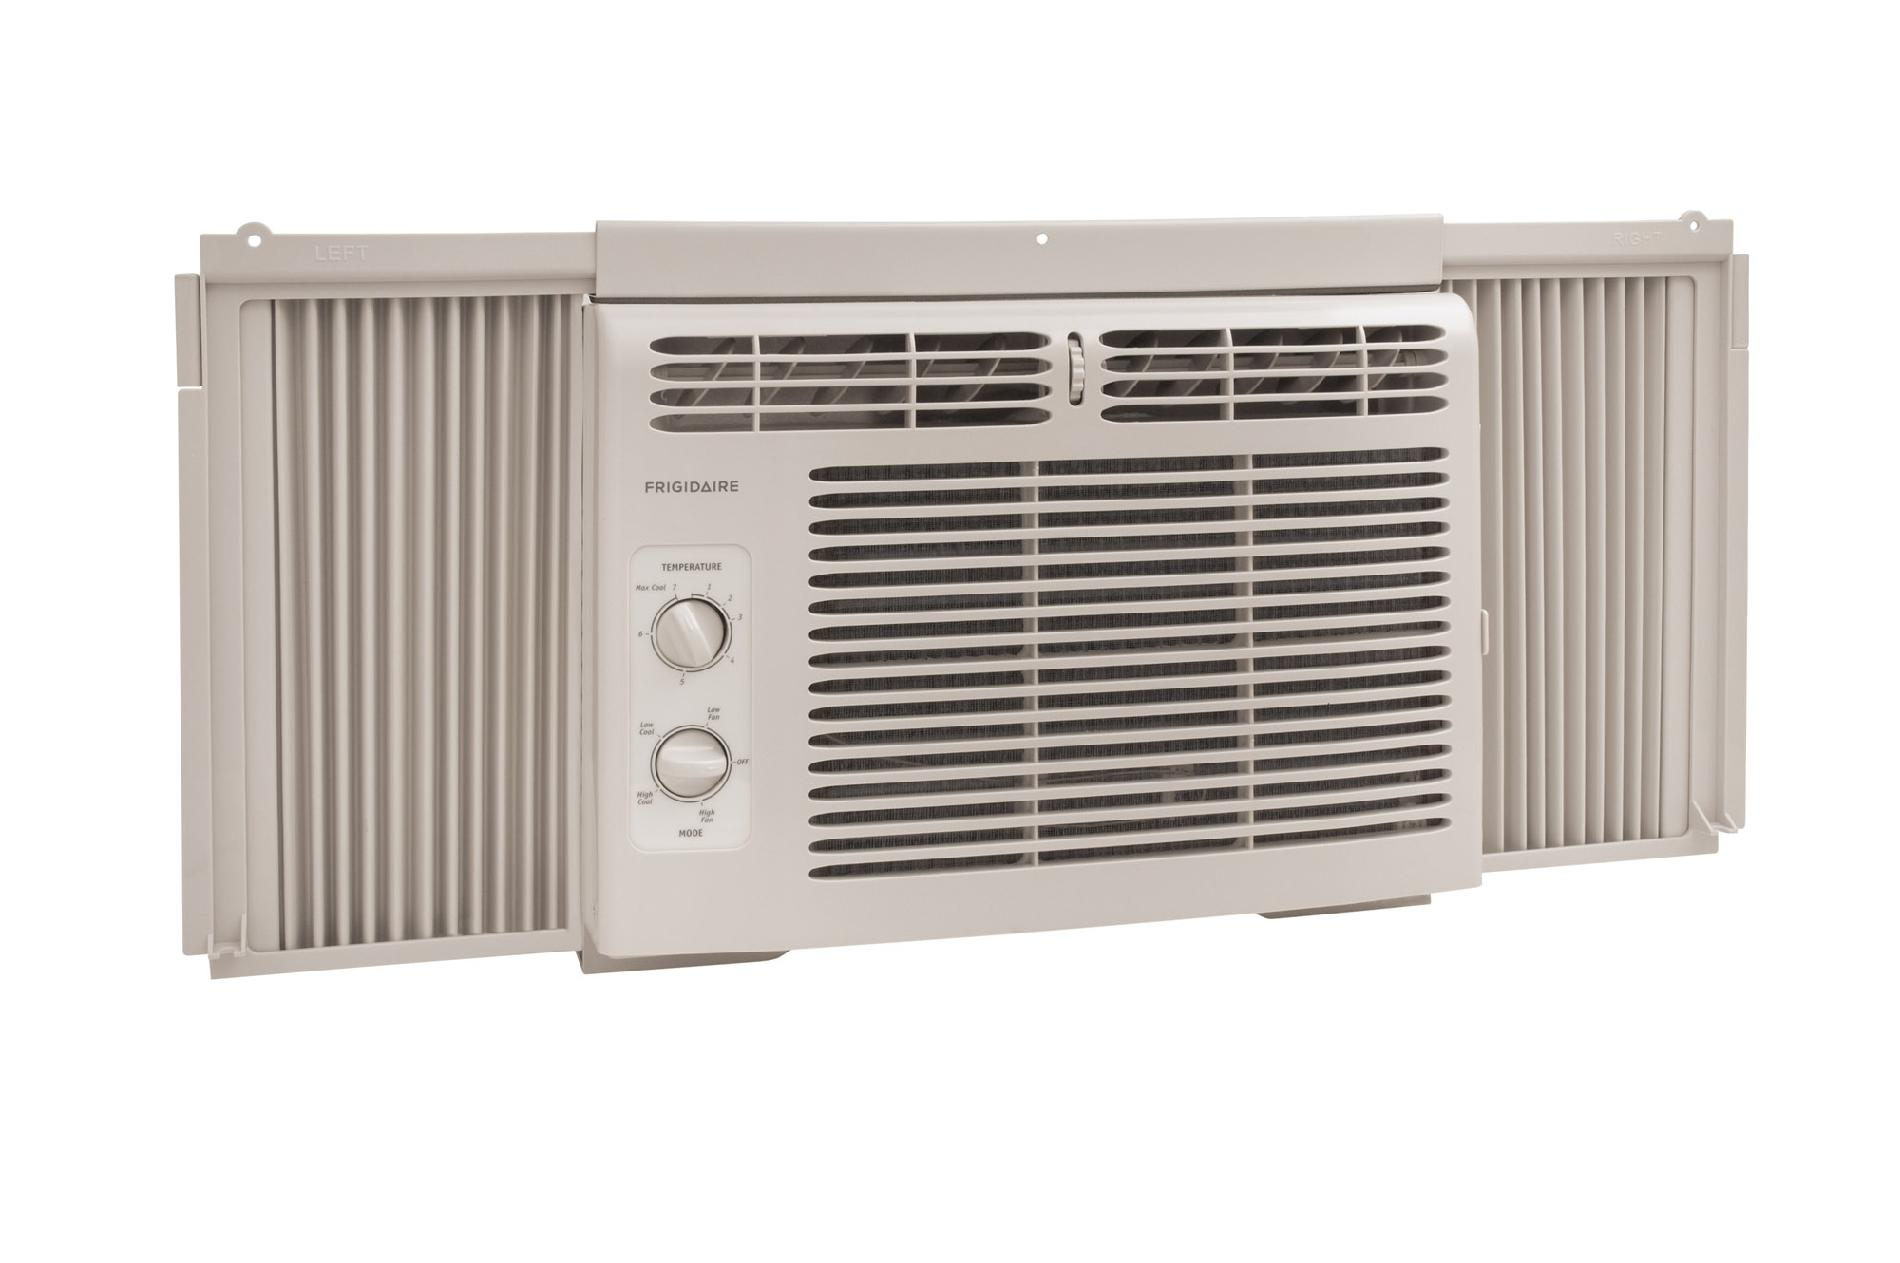 Frigidaire 12000 BTU Room Air Conditioner